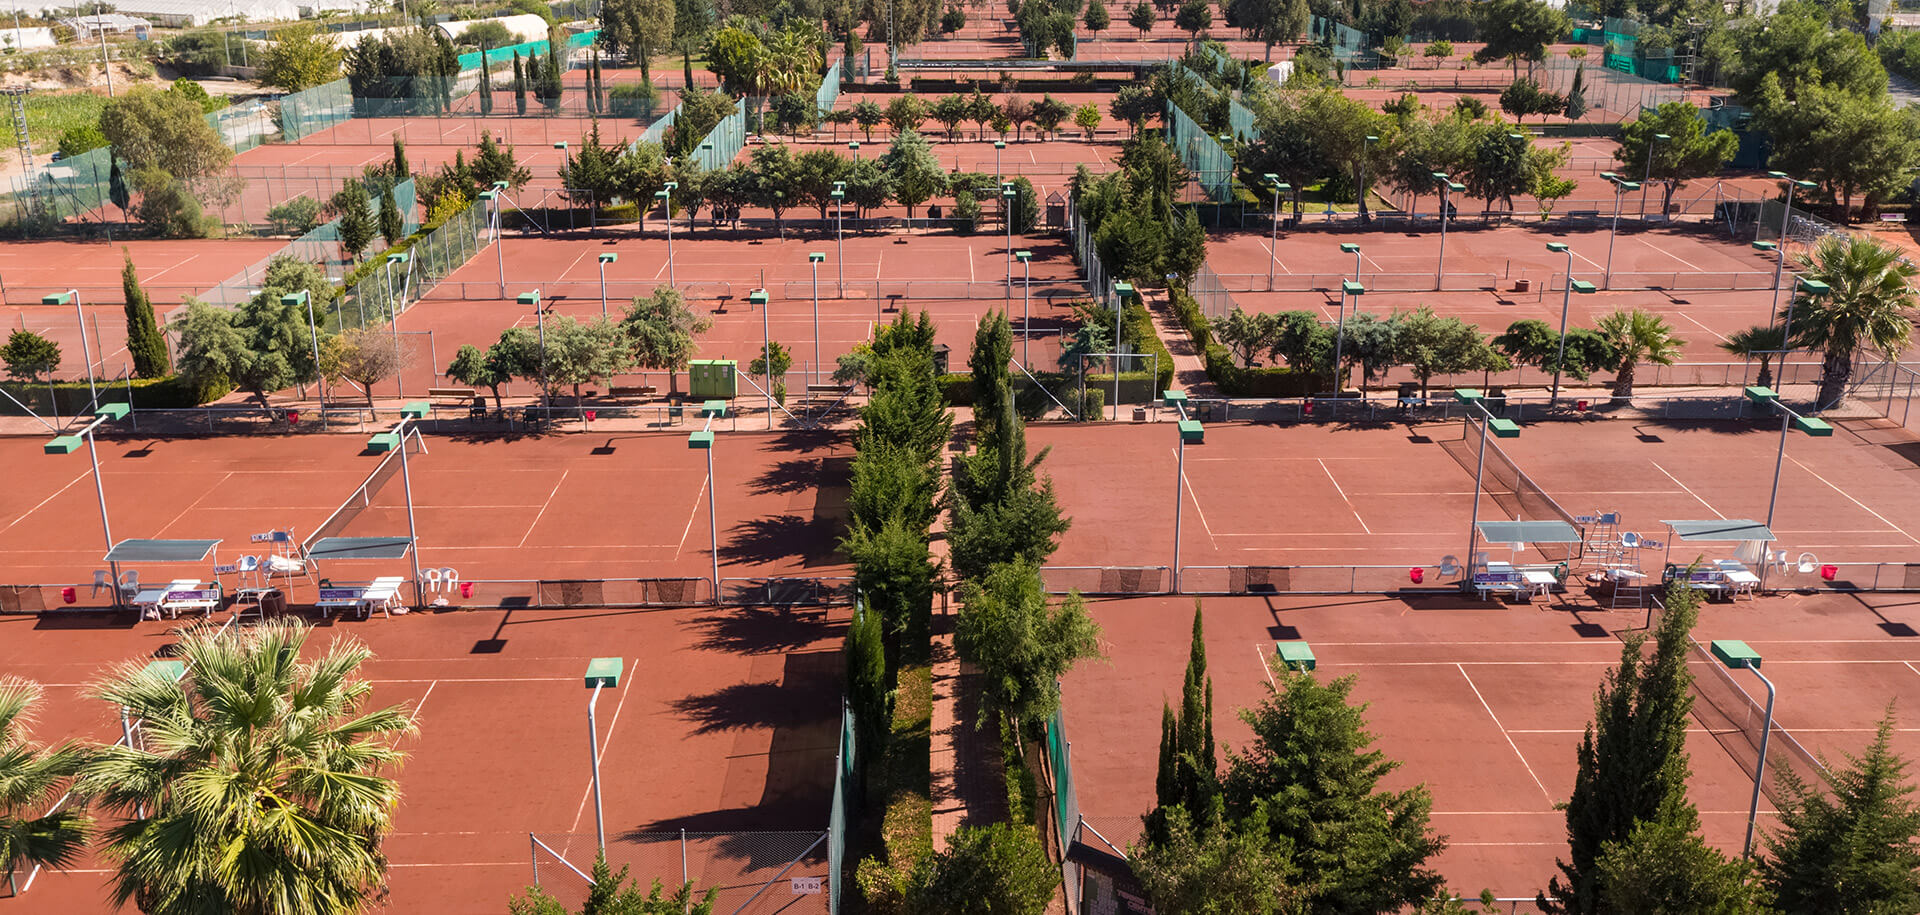 Make the most of your holiday with access to our tennis center which is made up of 61 tennis courts, includes recreational and children's courts, and is host to many national and international tournaments.